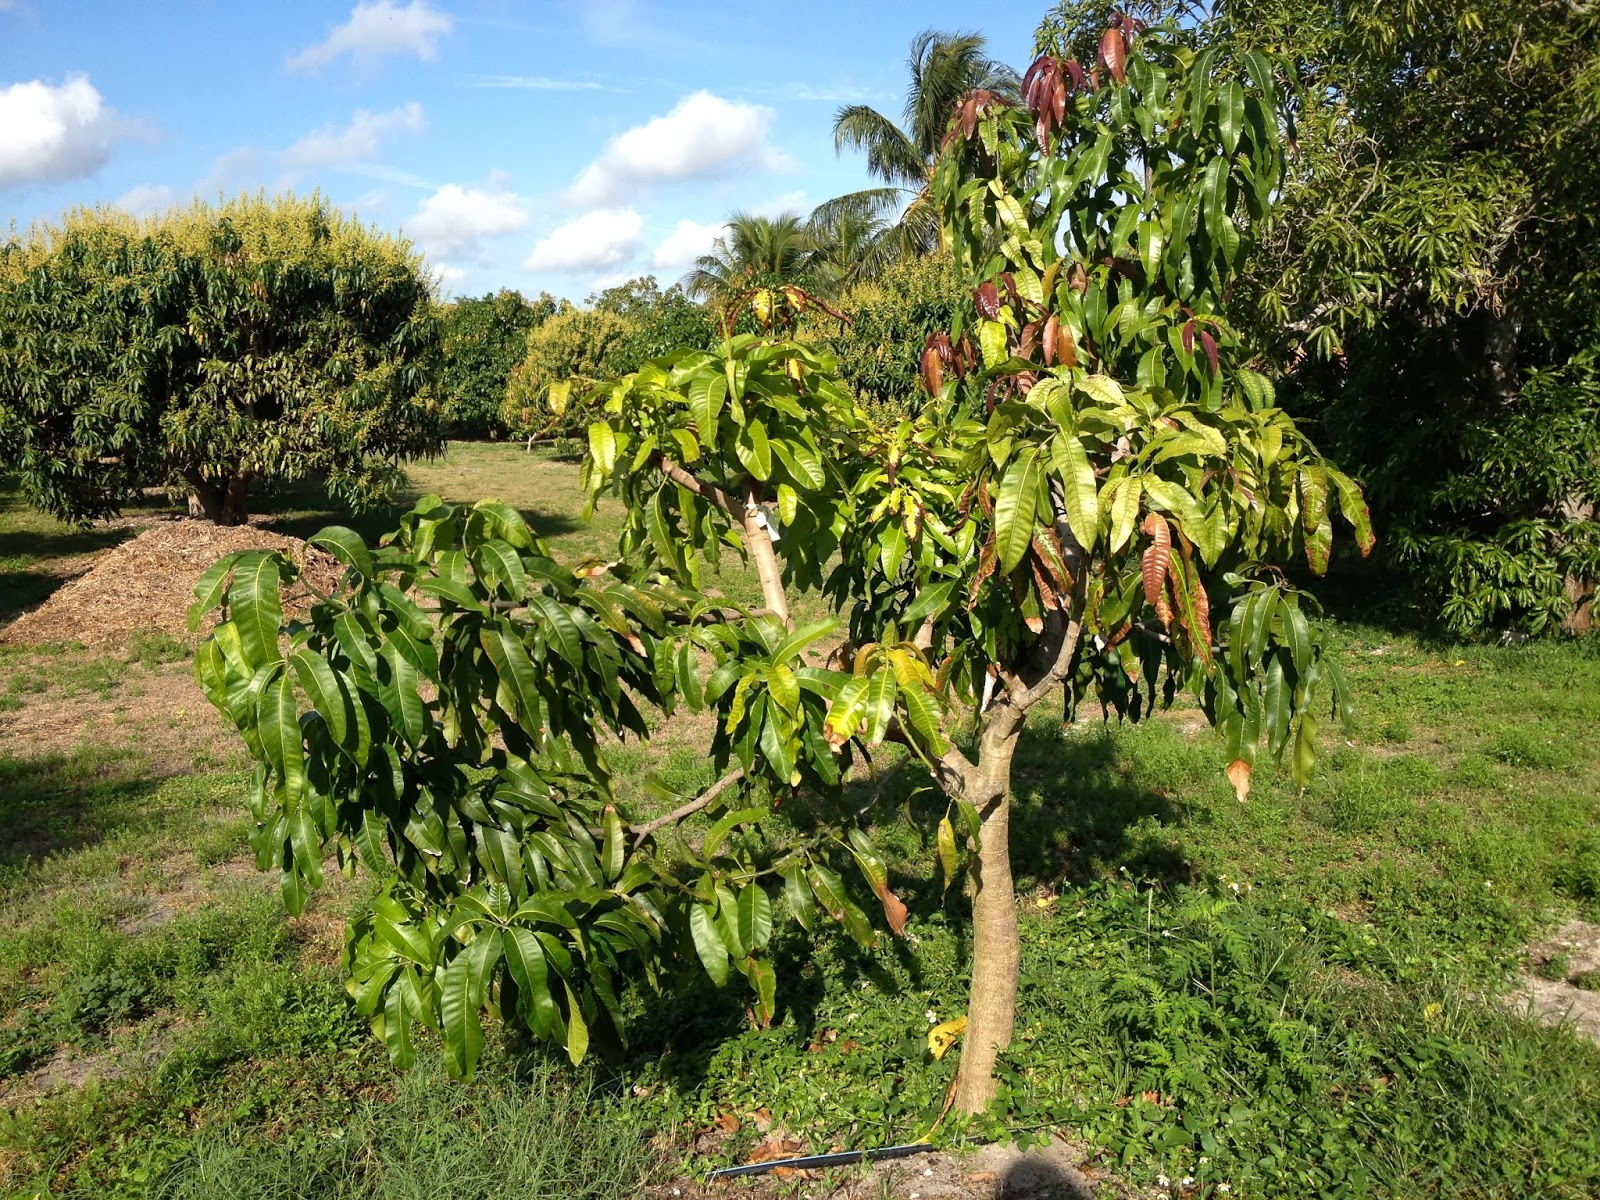 This Tree We Are Grafting Over To Carrie Mango I Eliminated Most Of The  Original Variety, So That New Growth Will Be On Only The Carrie Branches